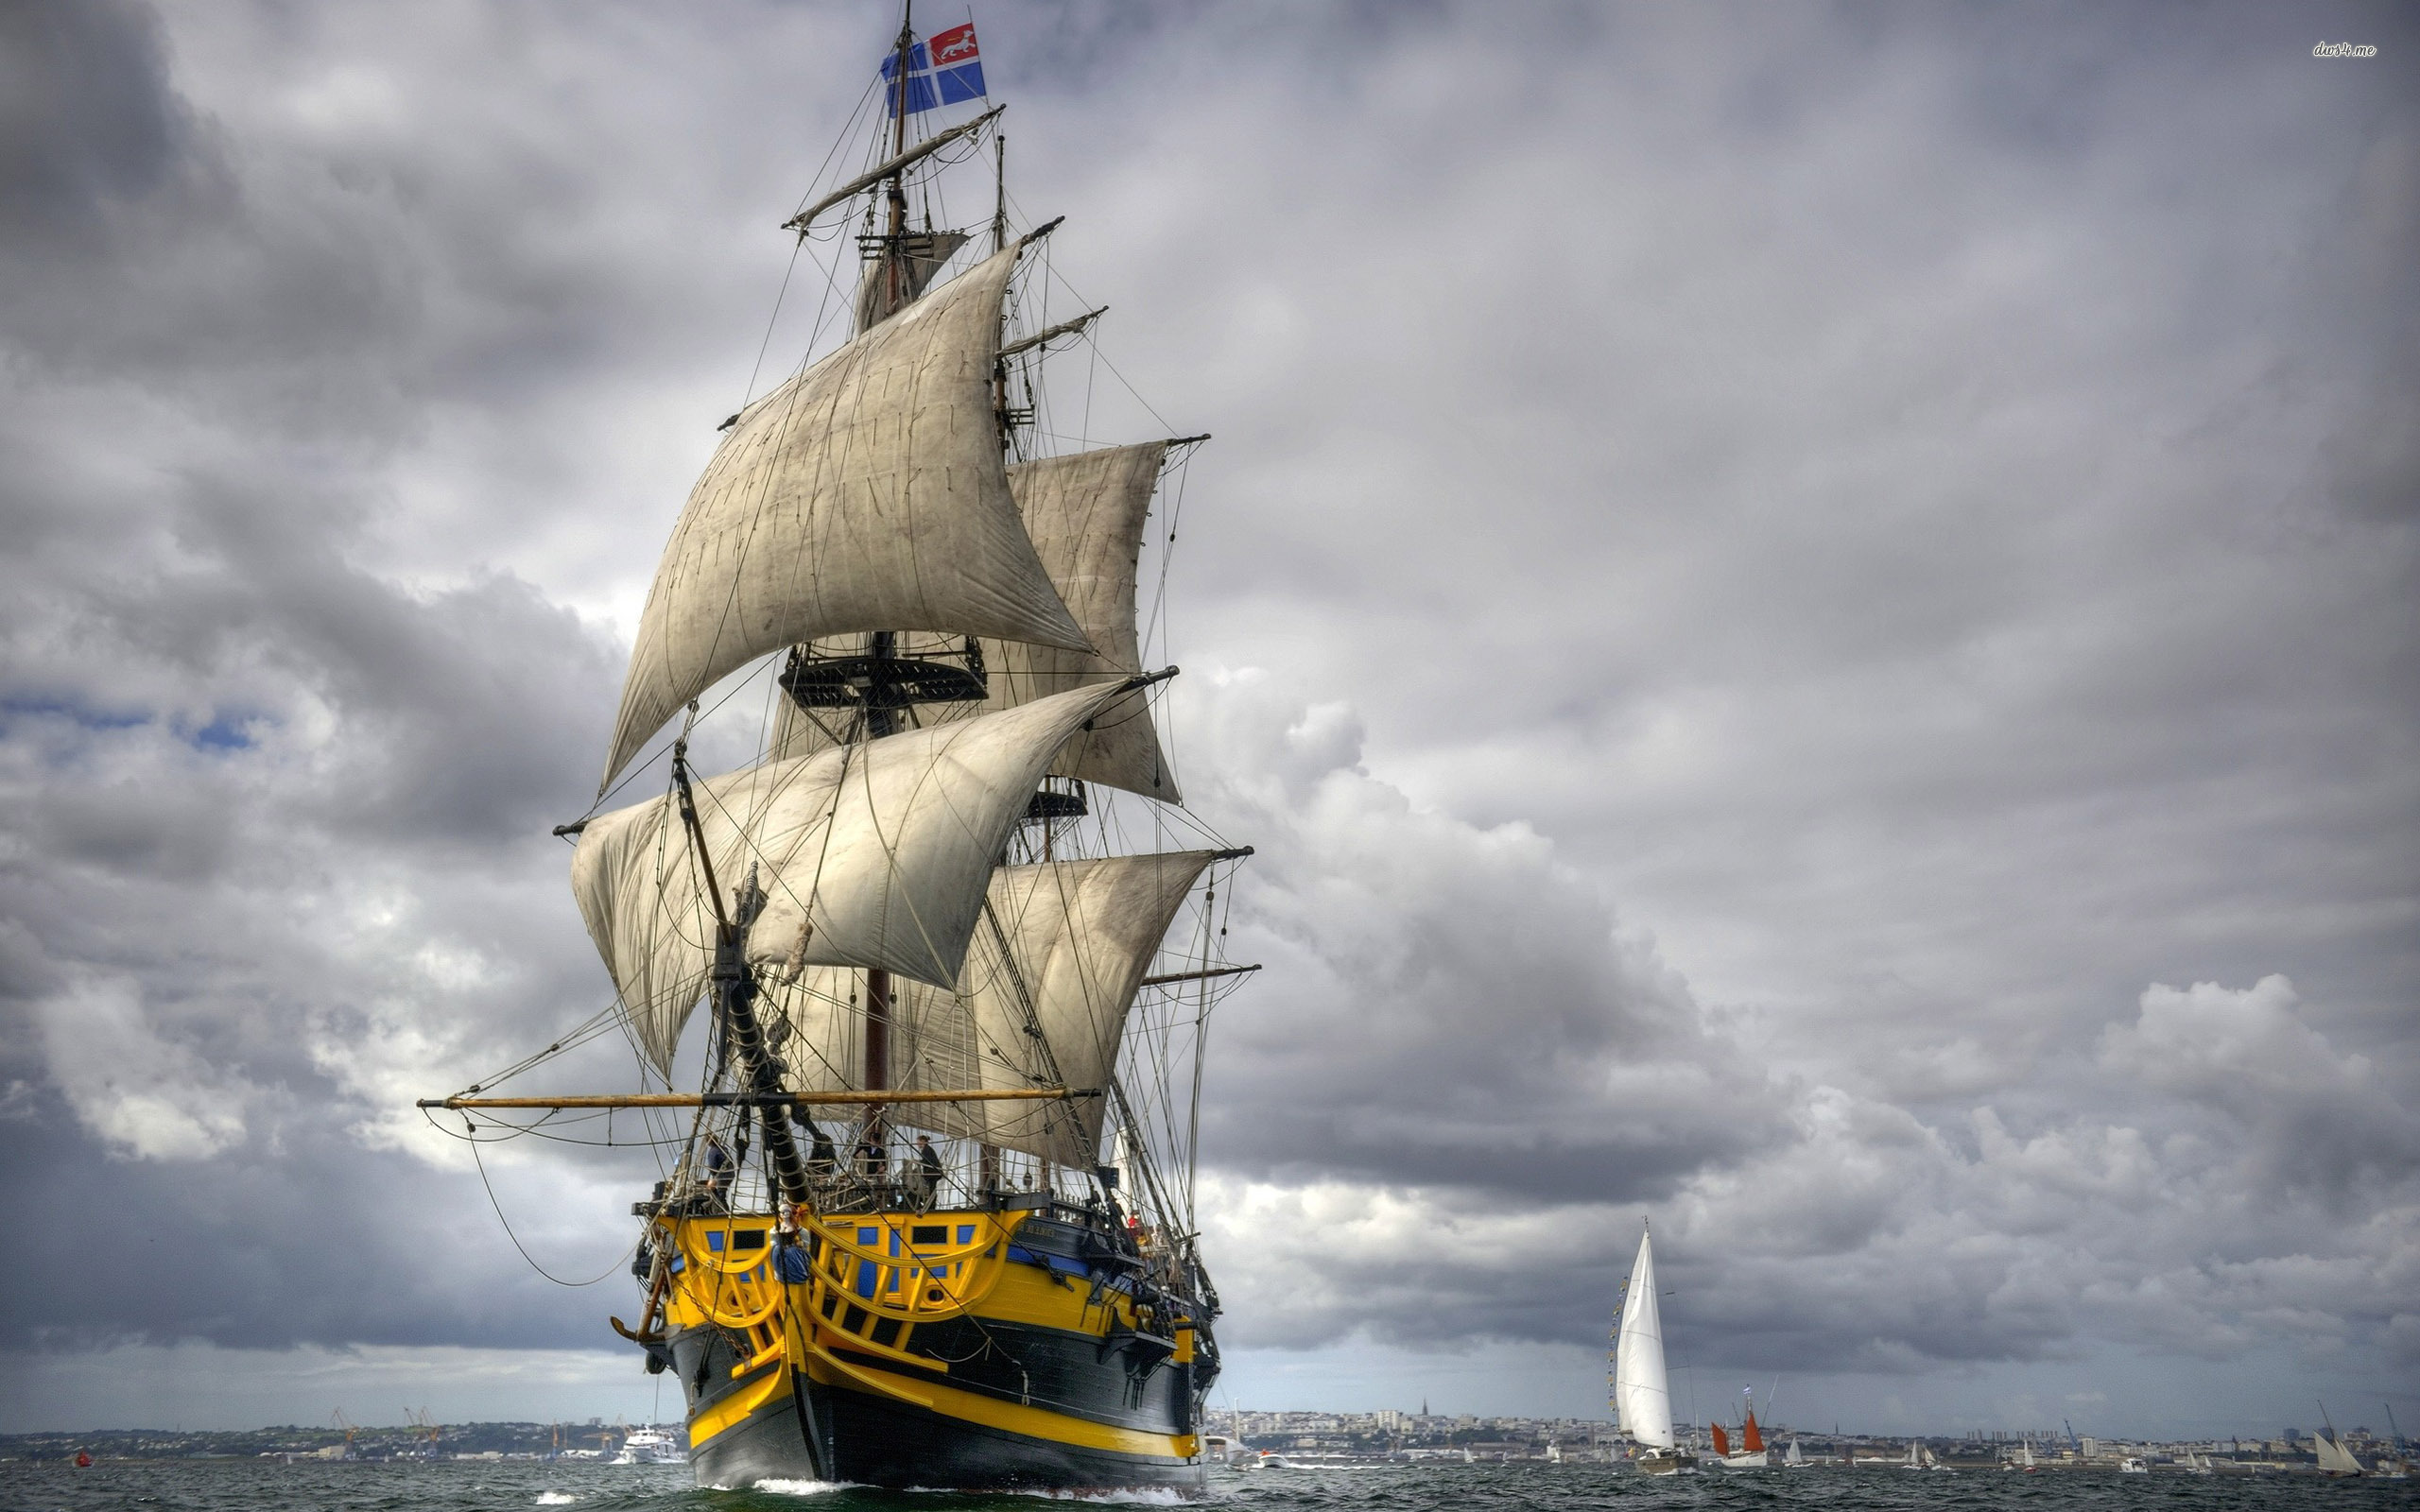 Sailing ship wallpaper 2560x1600 2560x1600